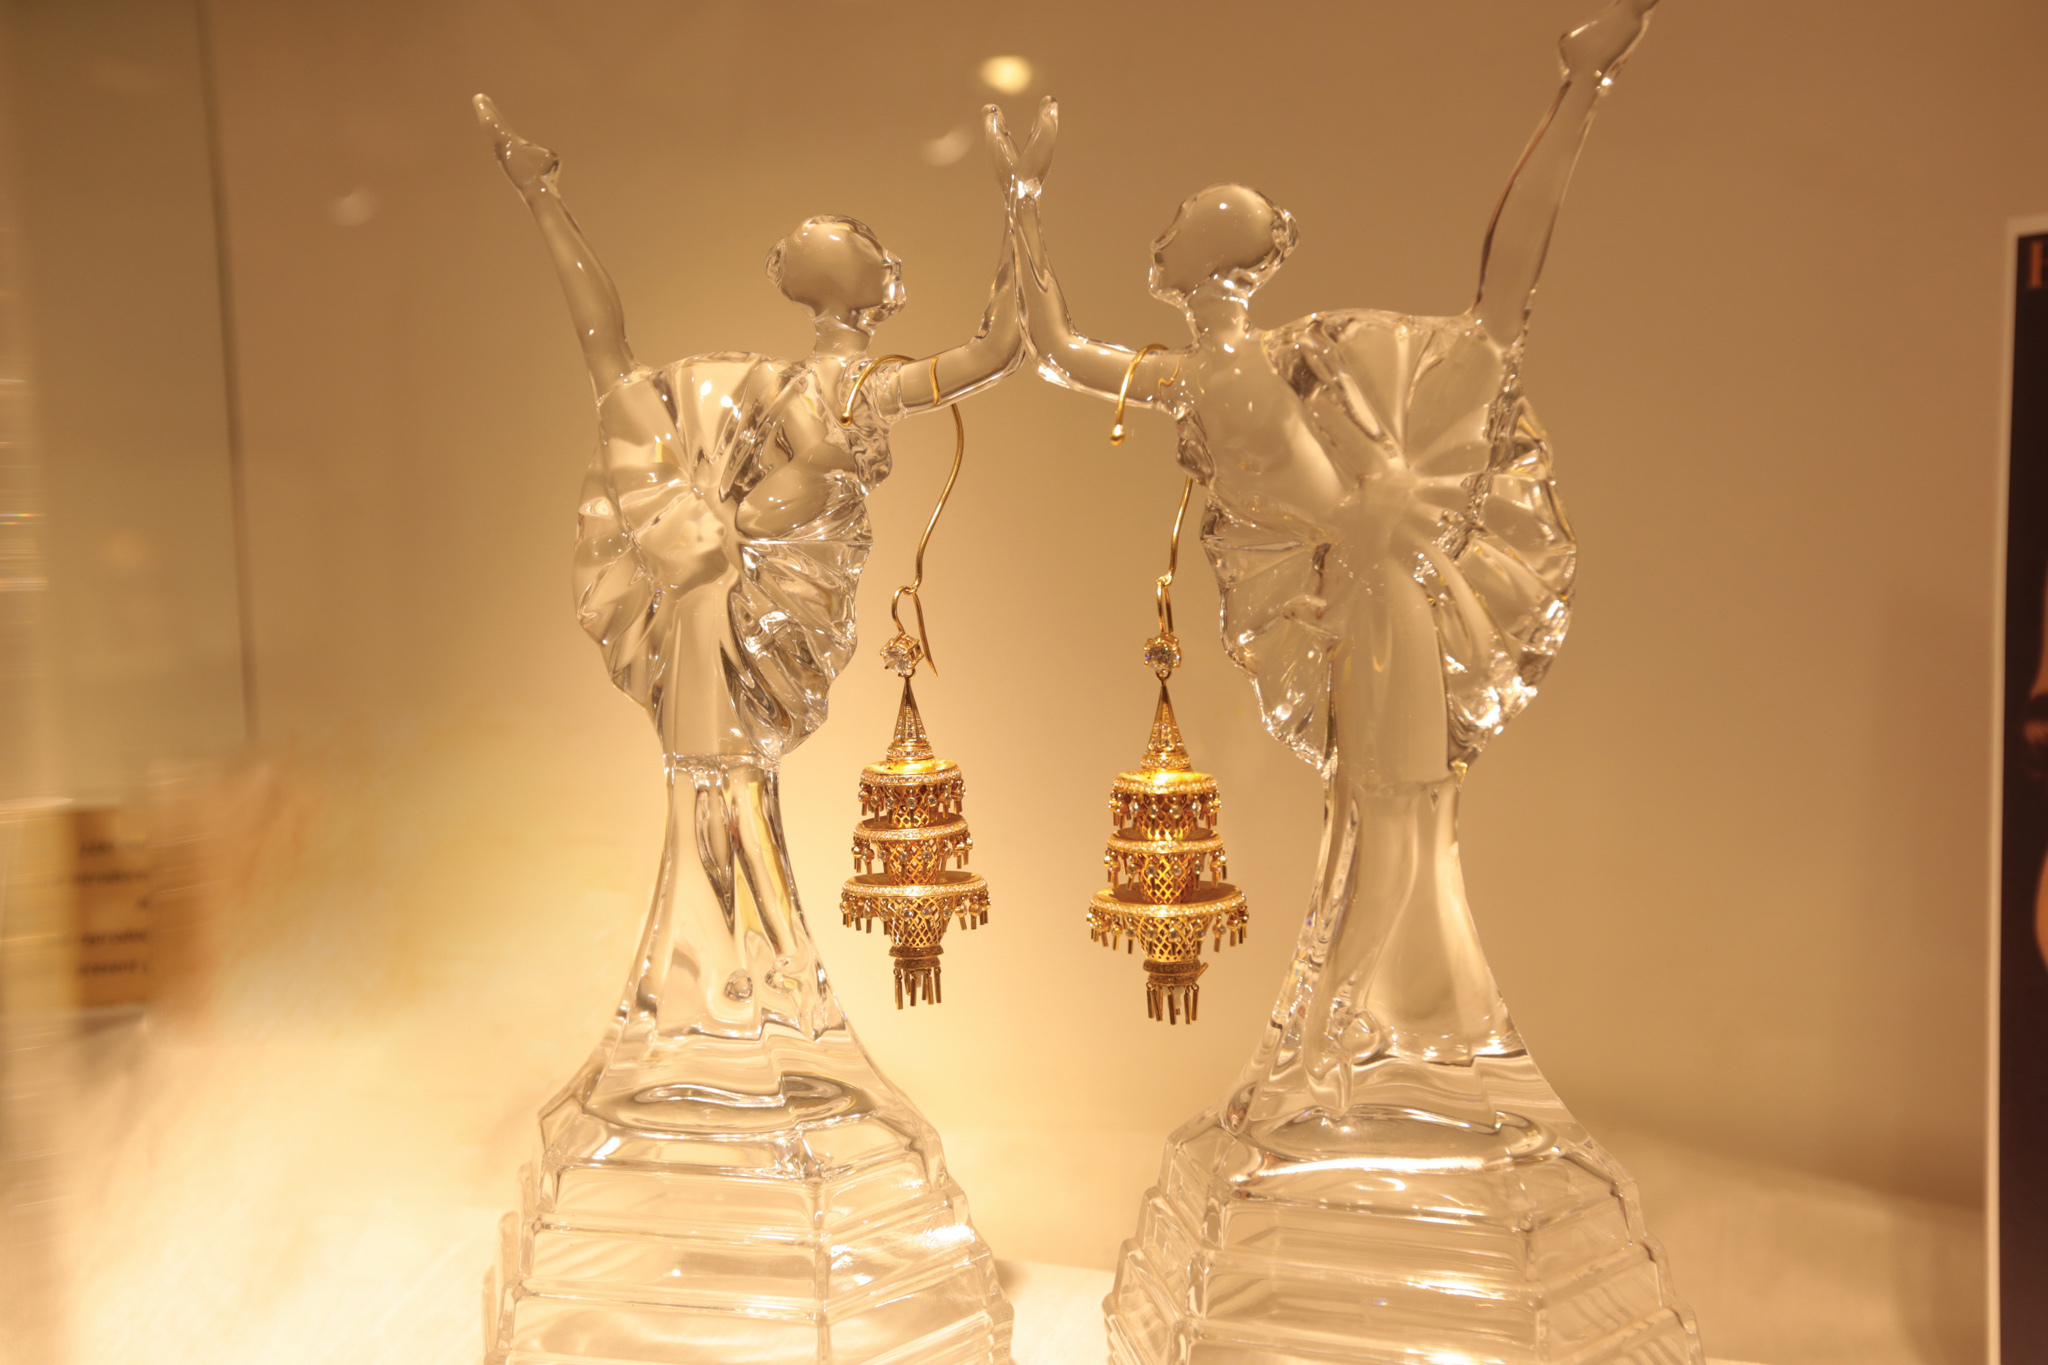 A dazzling pair of dangling gold earrings at Vogue Jewellers